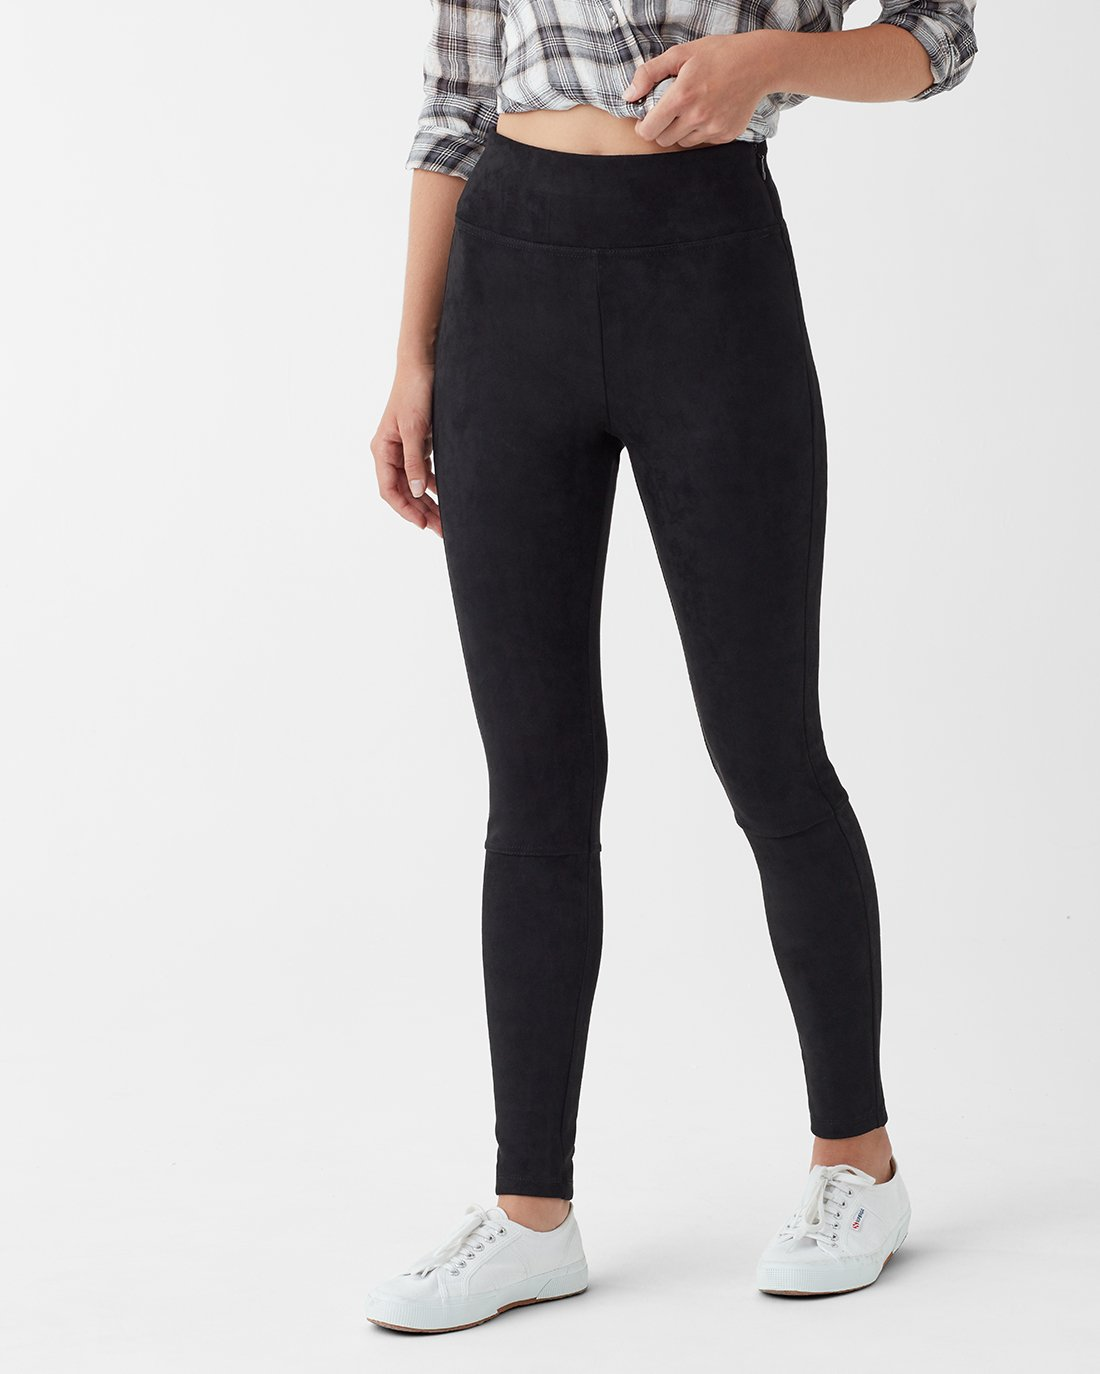 Splendid Highline Faux Suede Legging